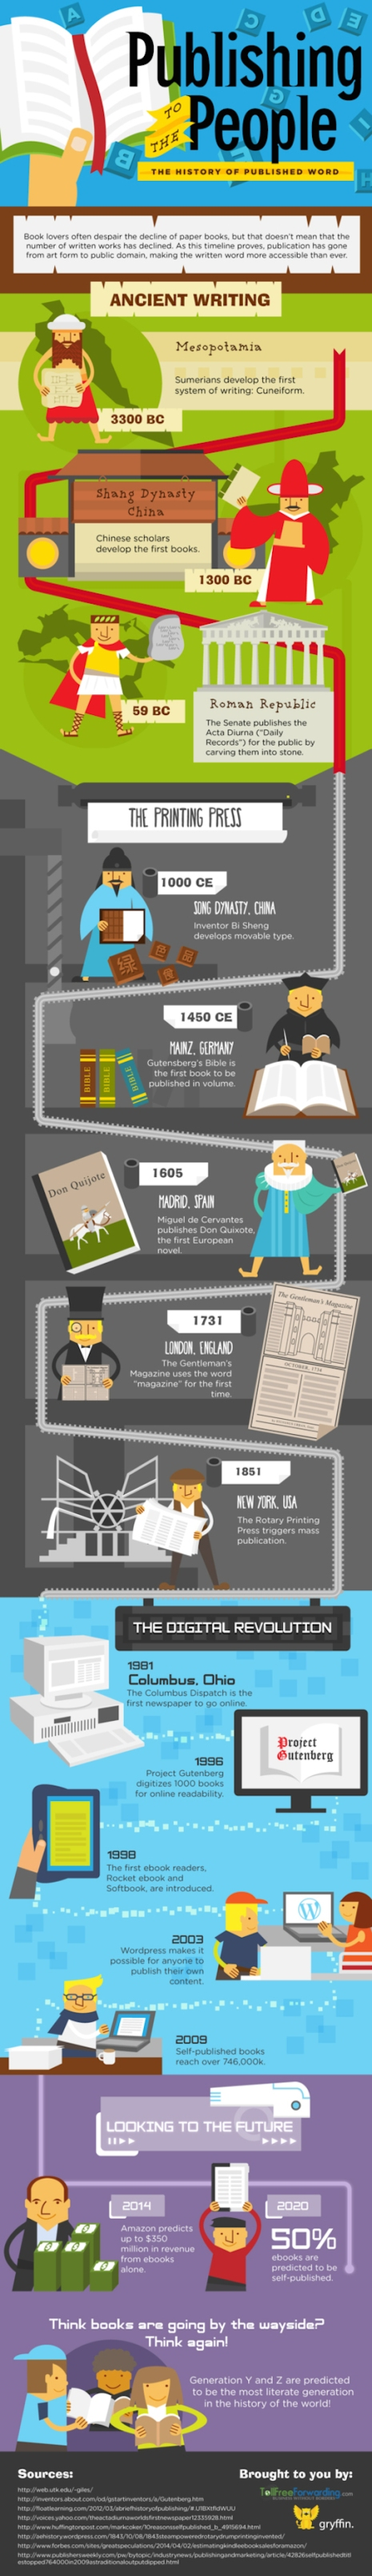 The-timeline-of-published-word-infographic